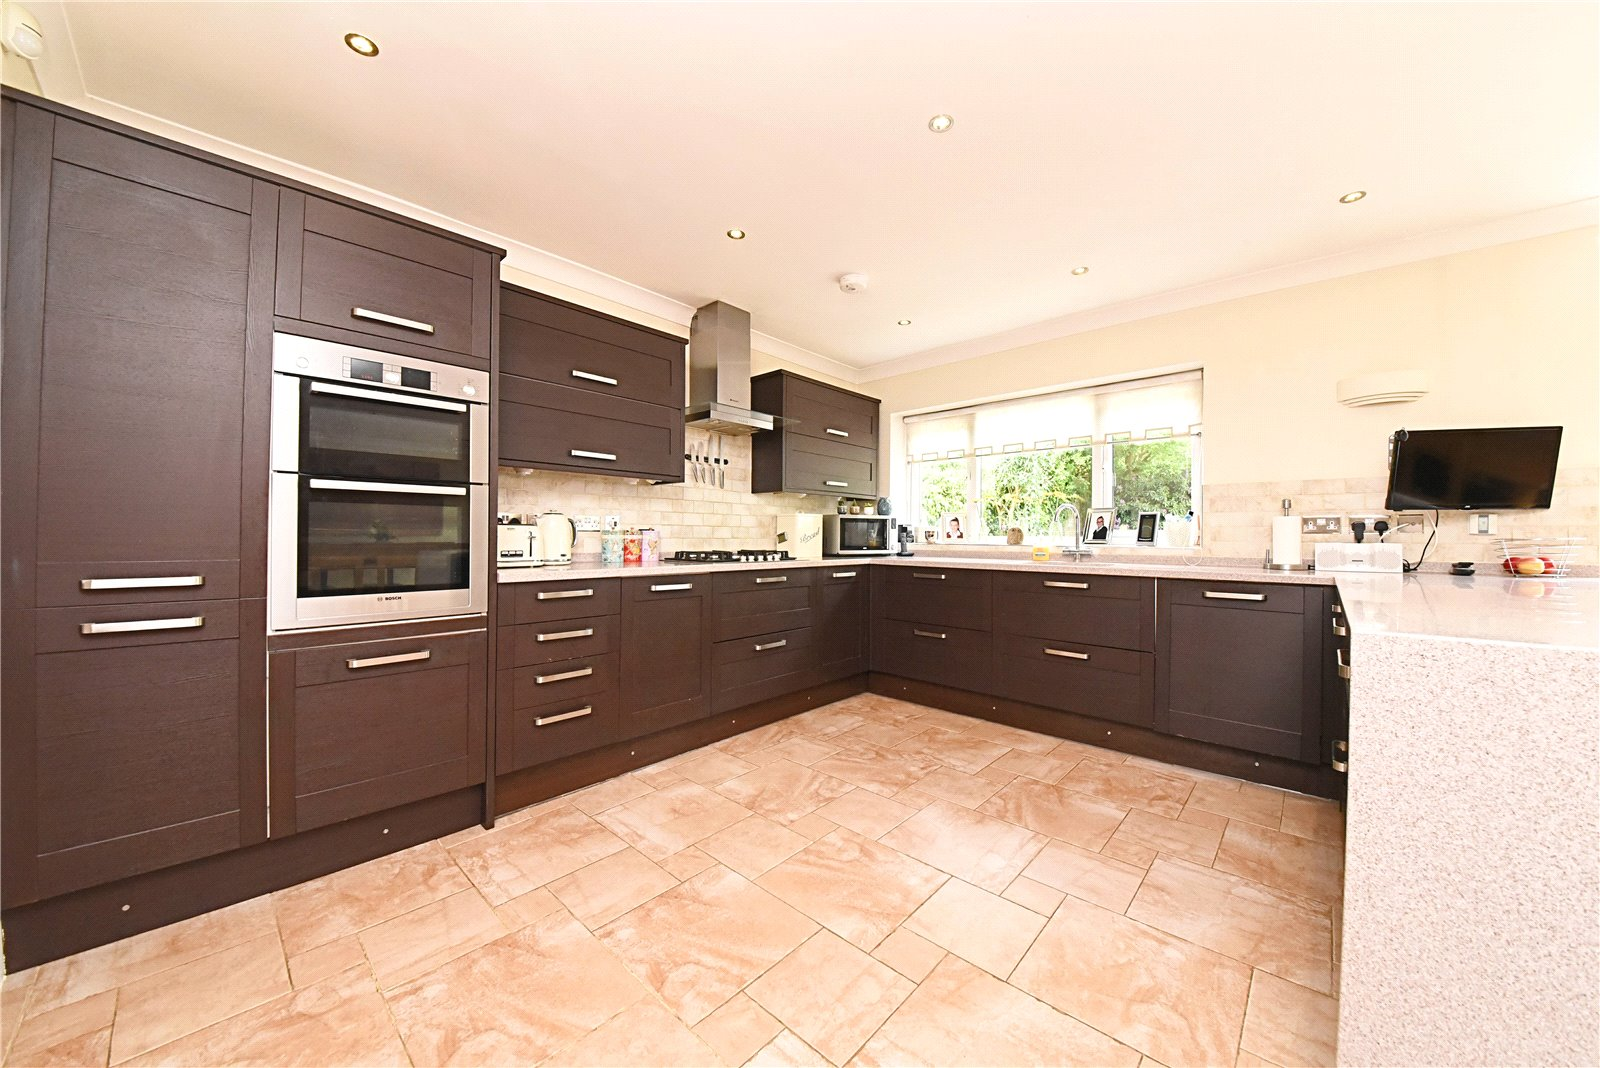 4 bed house for sale in Stanmore, HA7 3AZ  - Property Image 3